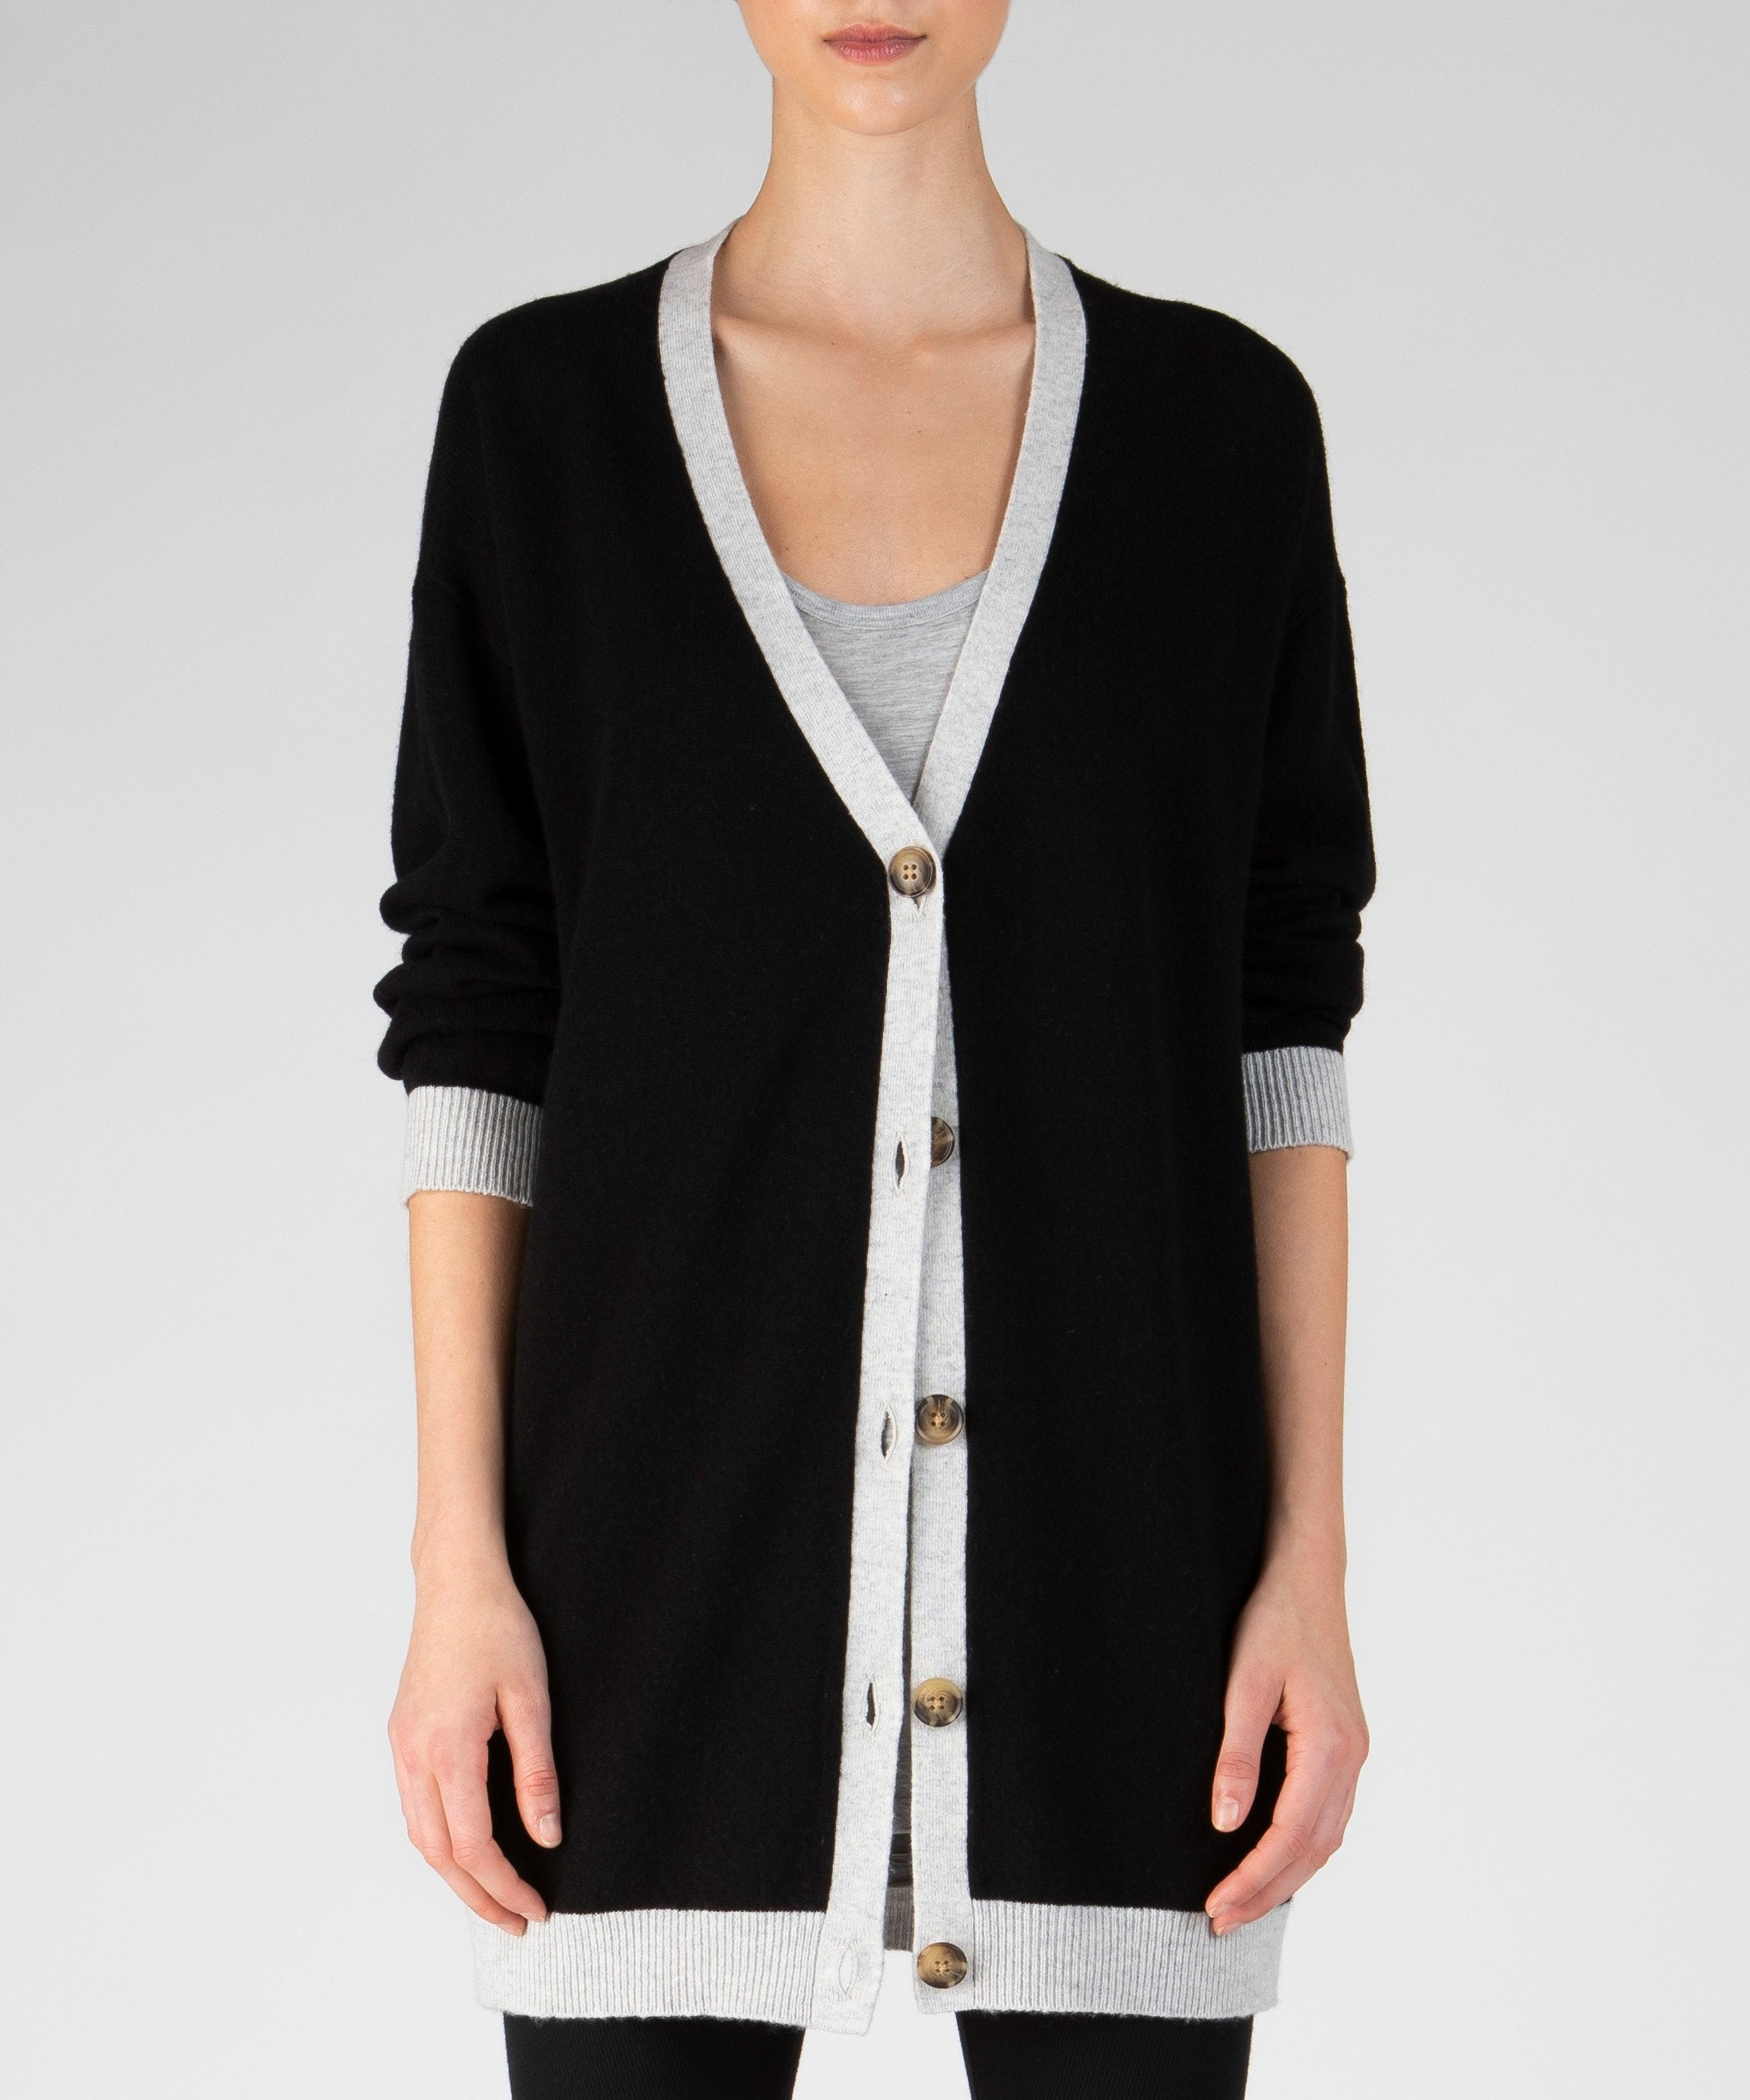 Black Oversized Cashmere Cardigan - Women's Luxe Sweater by ATM Anthony Thomas Melillo